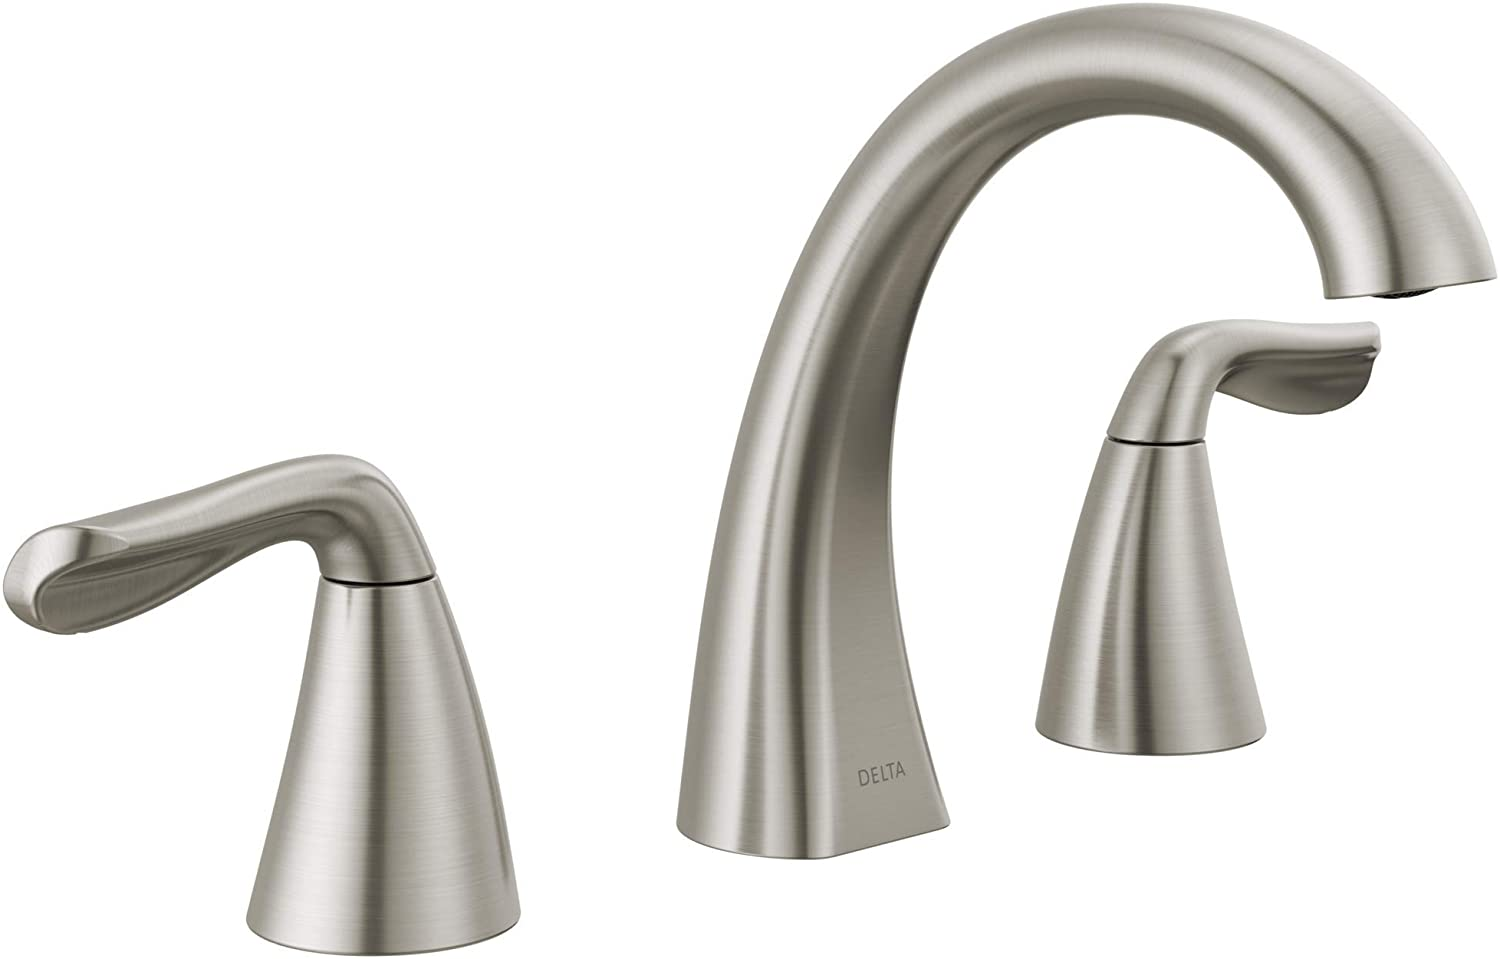 Delta Faucet Arvo Widespread Bathroom Faucet Brushed Nickel, Bathroom  Faucet 20 Hole, Bathroom Sink Faucet, Drain Assembly, SpotShield Stainless  ...